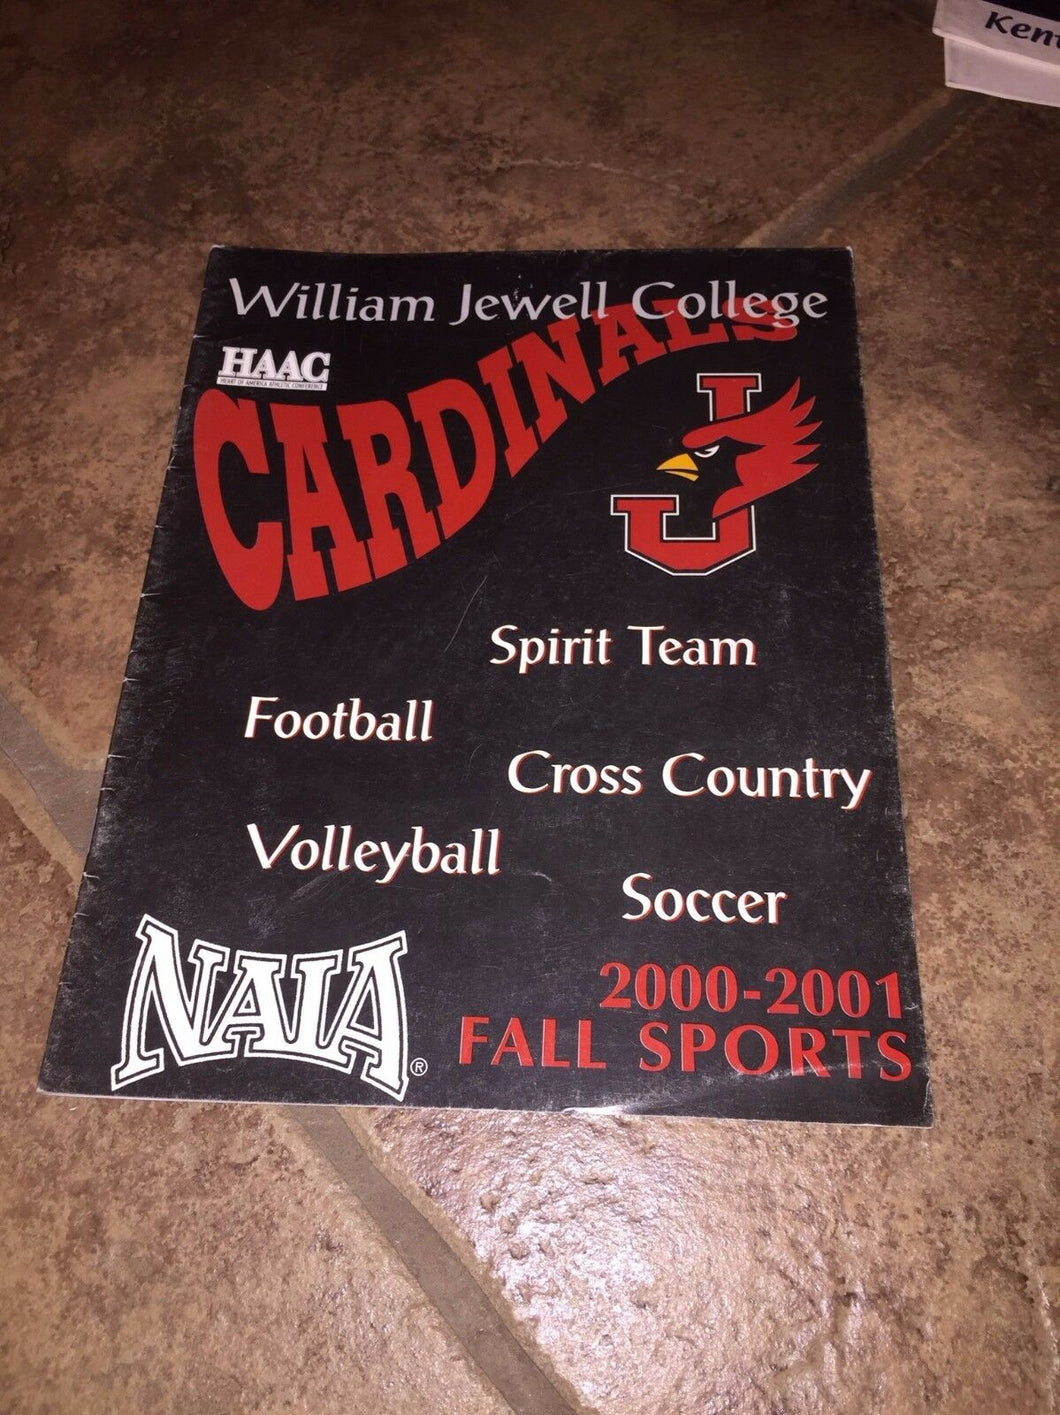 2000-2001 WILLIAM JEWELL COLLEGE FALL SPORTS FOOTBALL SOCCER+  MEDIA GUIDE b4